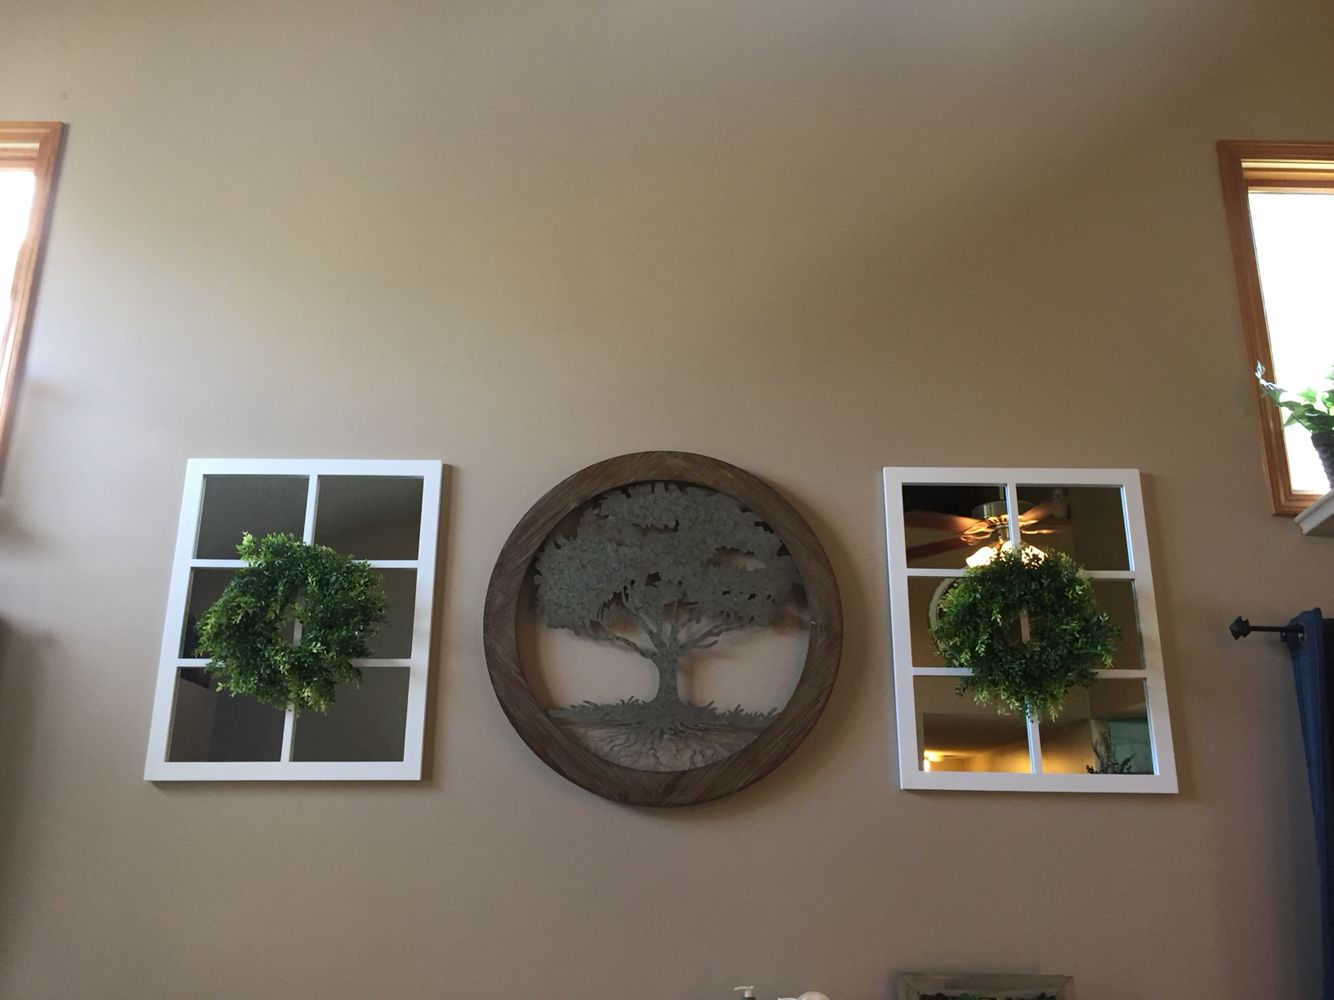 Large wall decor. Tree. Mirror with wreath. Living Room.